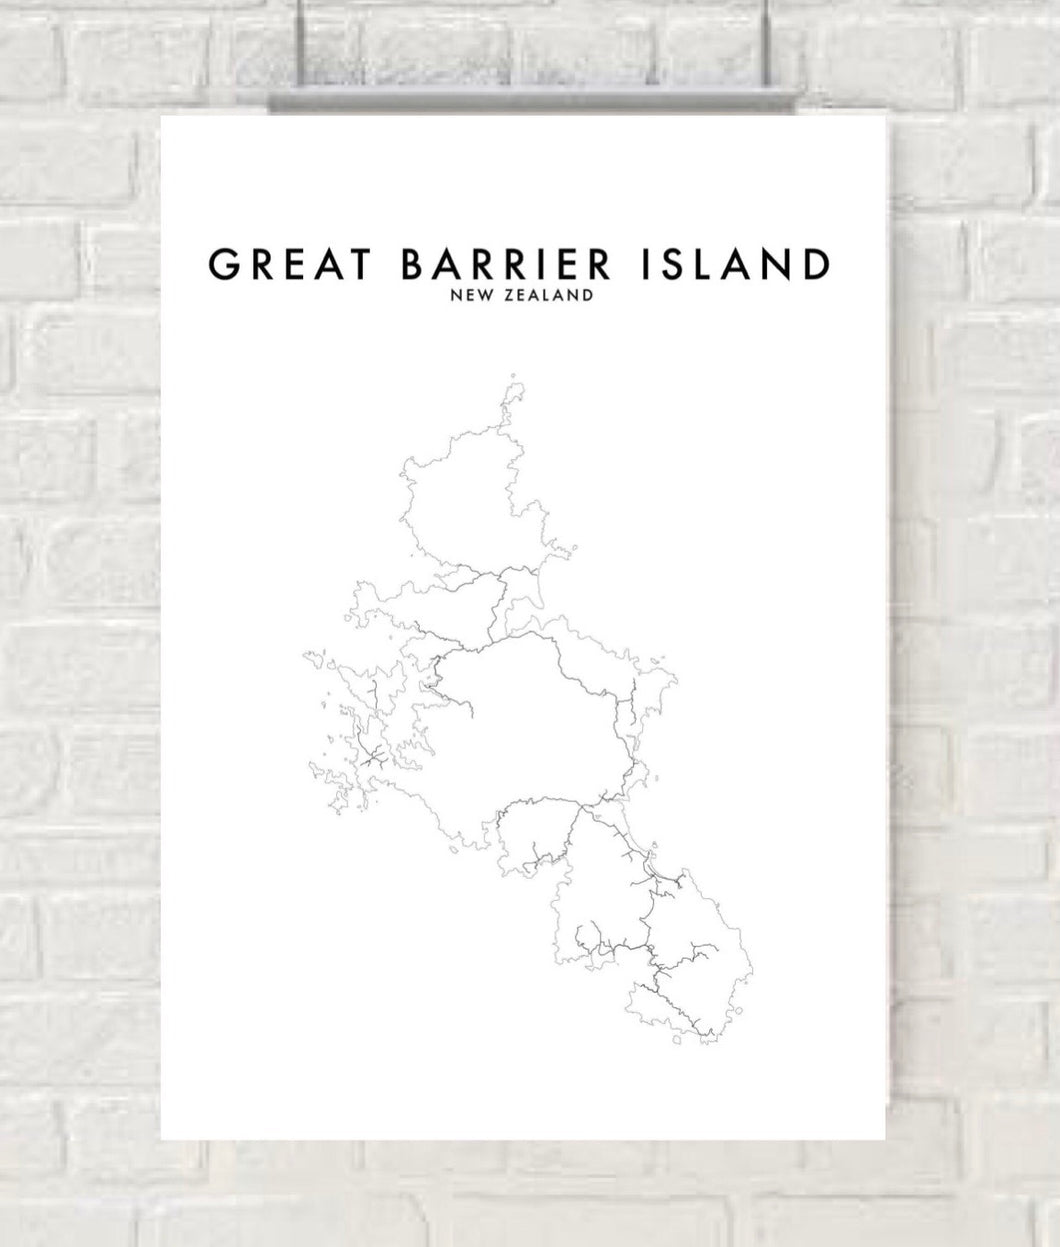 GREAT BARRIER ISLAND HOMETOWN PRINT